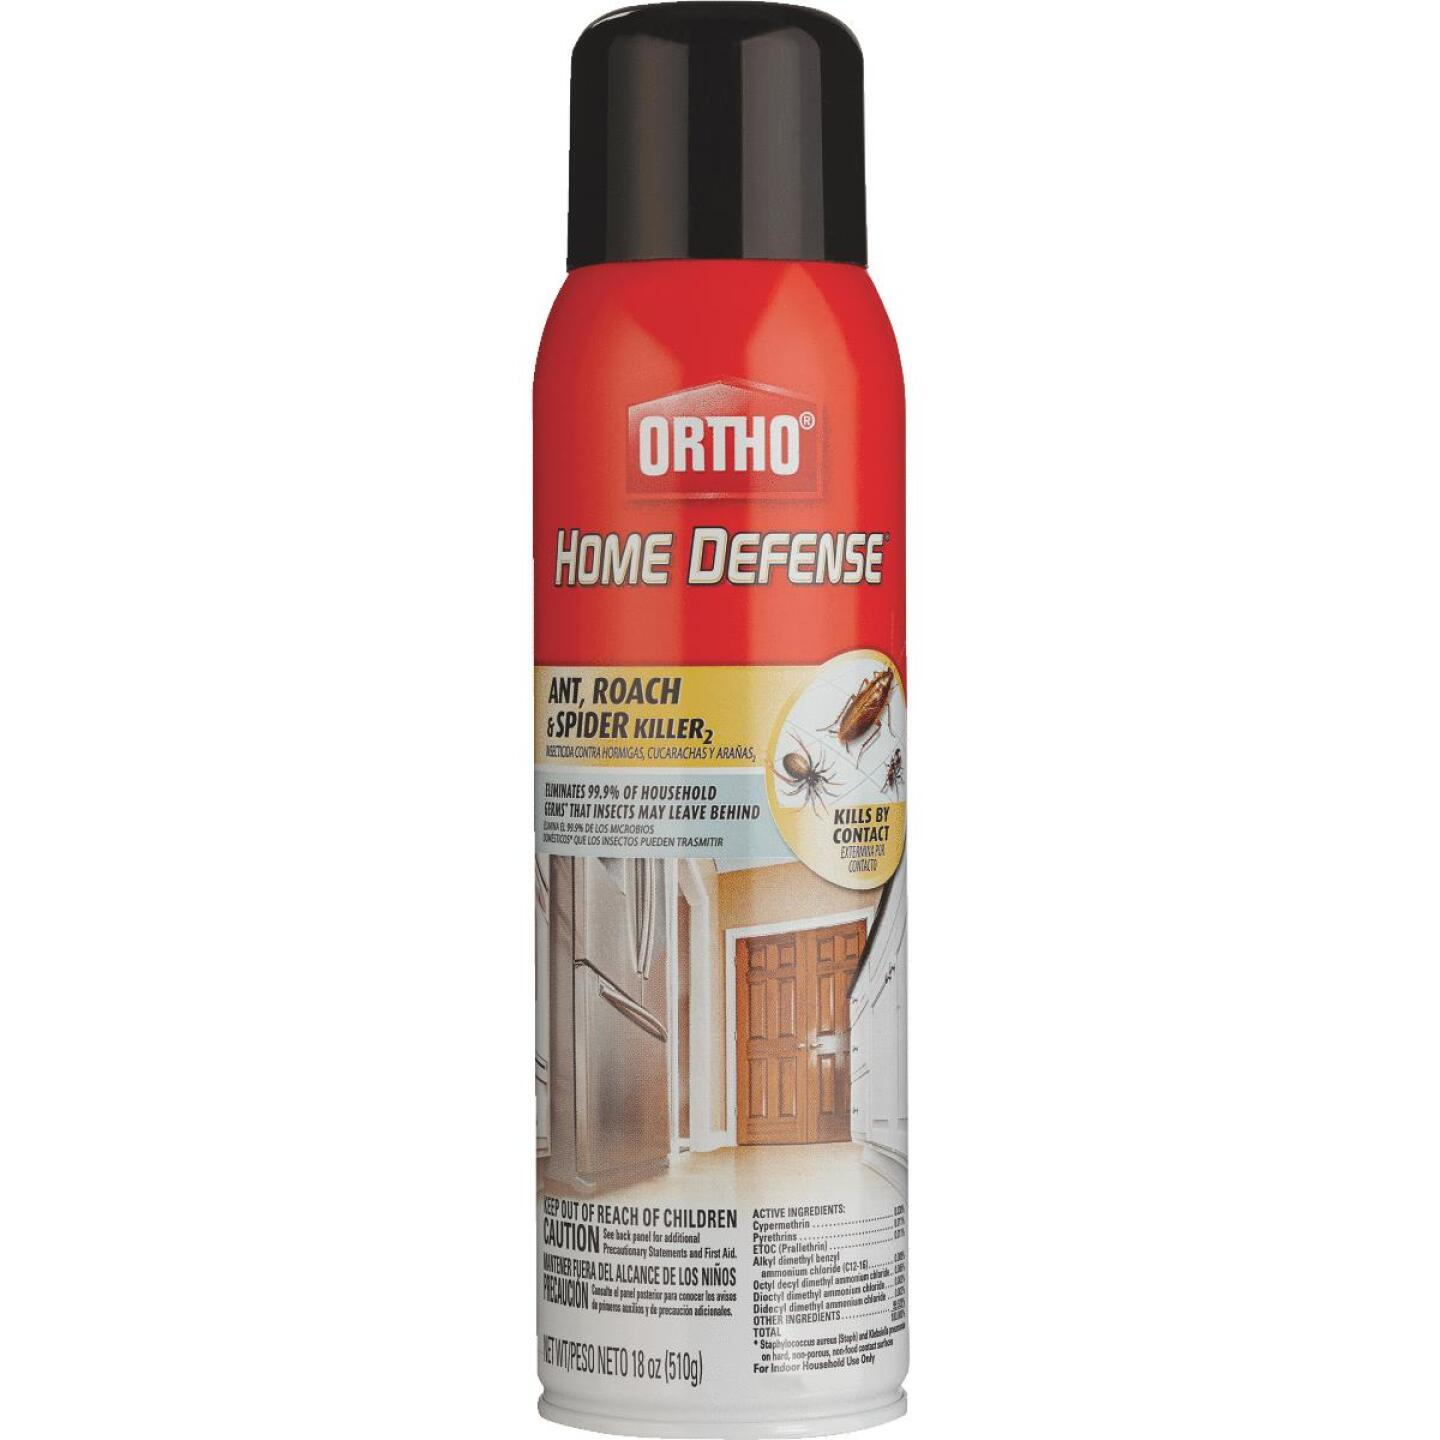 Ortho Home Defense 18 Oz. Aerosol Spray Ant & Roach Killer Image 1